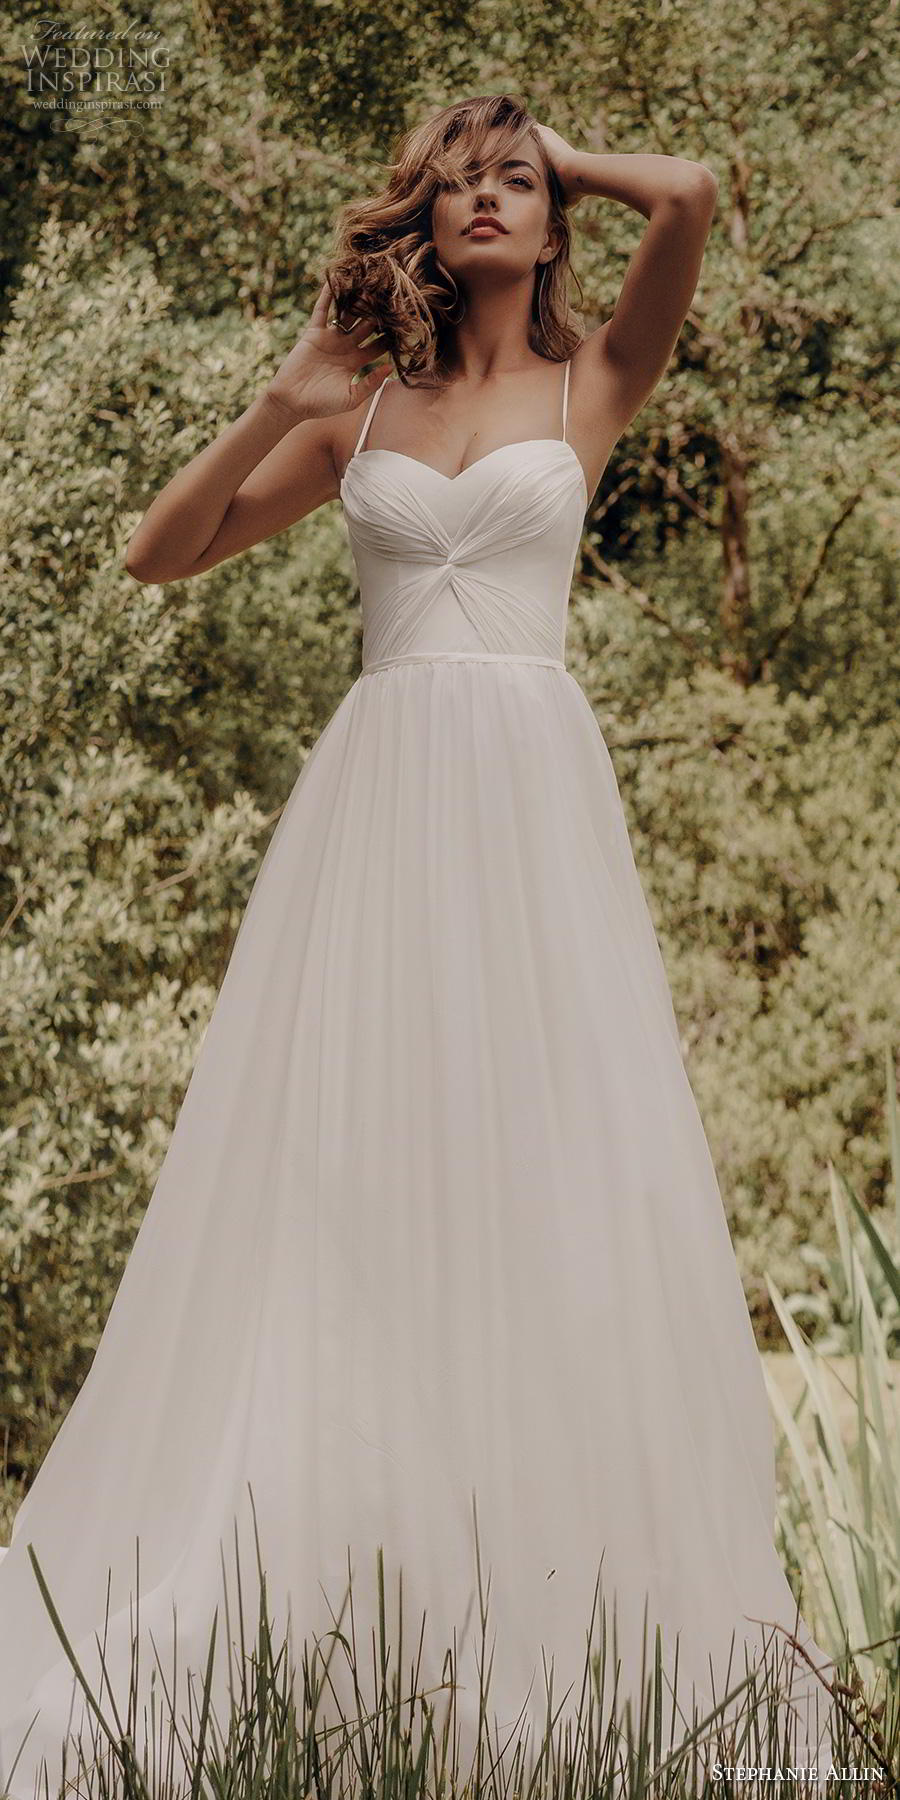 stephanie allin 2019 bridal sleeveless spaghetti strap sweetheart neckline ruched bodice romantic soft a  line wedding dress mid back sweep train (5) mv